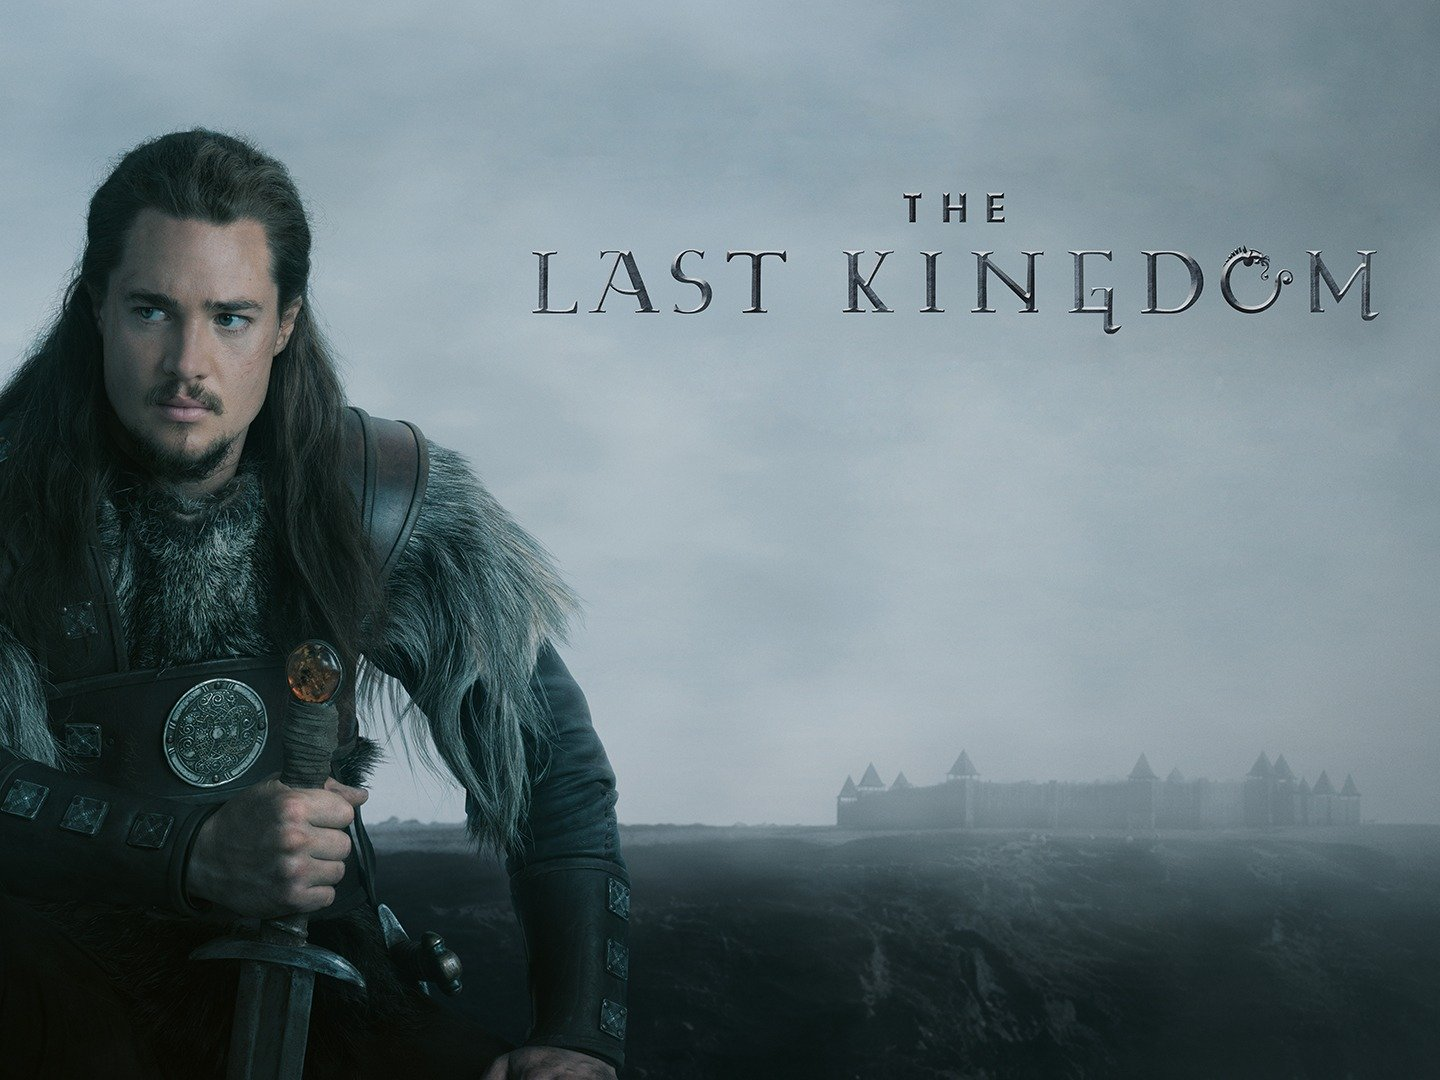 The Last Kingdom Season 2 Episode 6 Download 480p WEB-DL 150MB